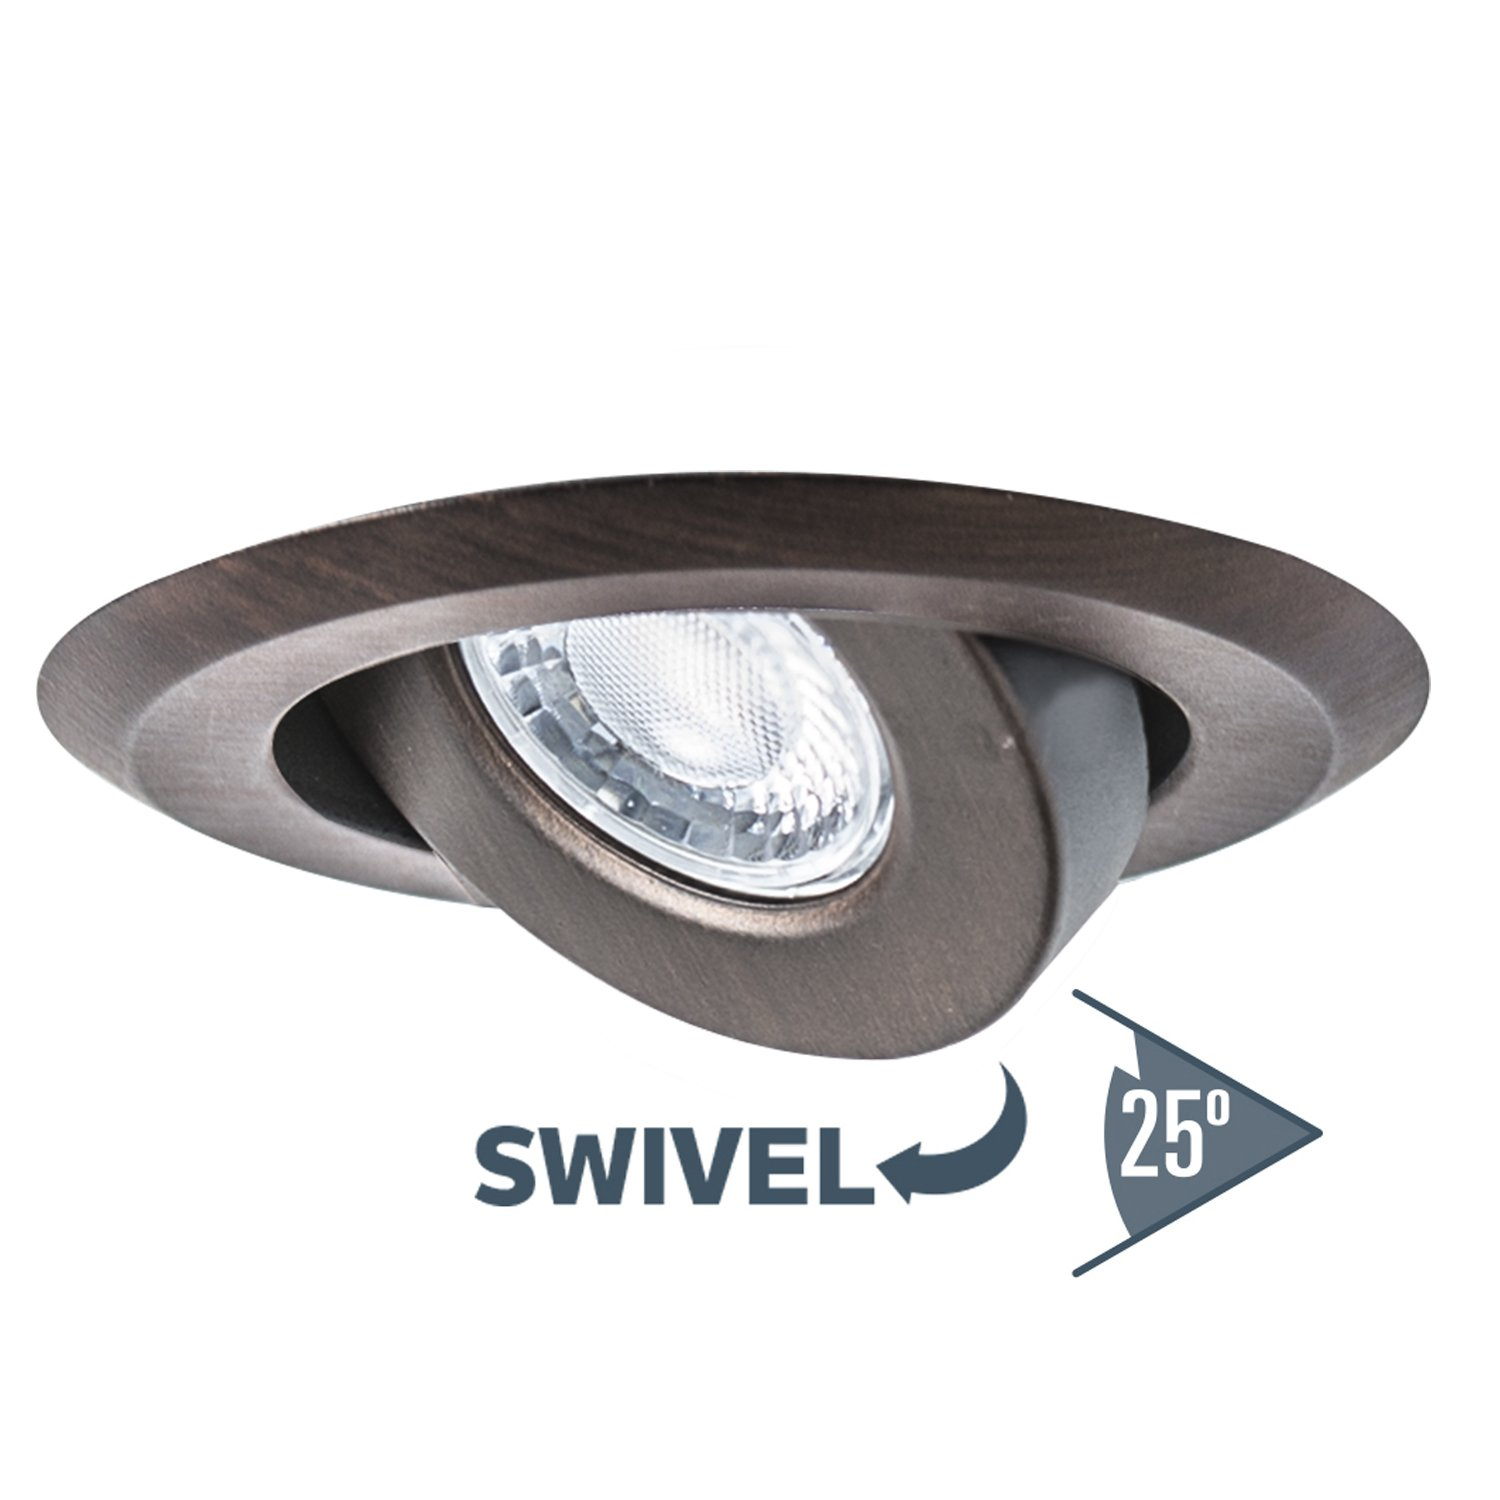 White LED GU10 550 Lumens Bulb Included Nadair GU378L-SWWH 4in LED Swivel Dimmable Downlight Recessed Light IC Rated 4in 3000K Warm White